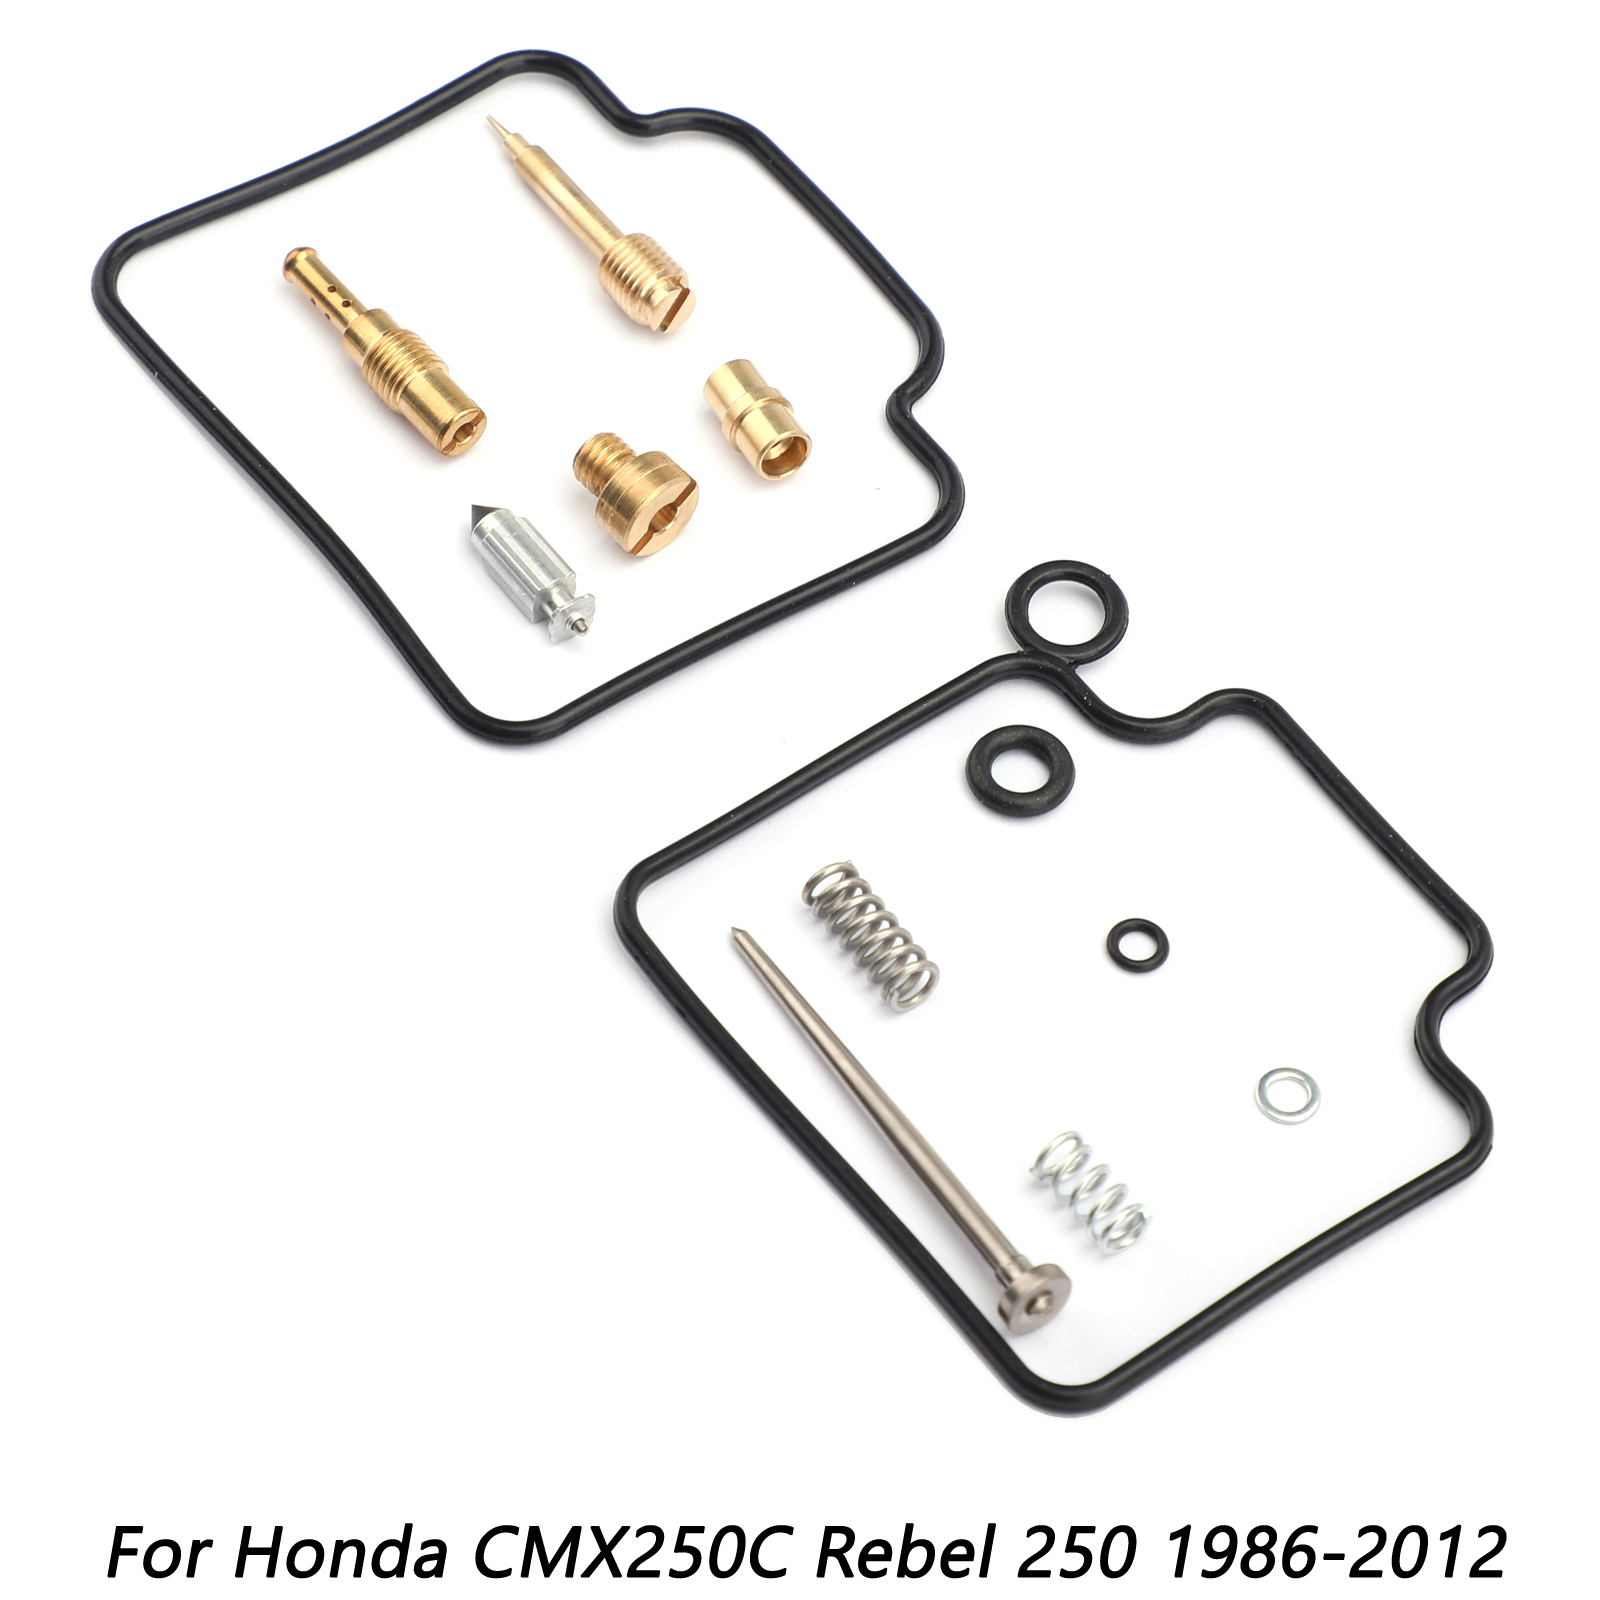 CARBURETOR CARB REPAIR REBUILD KIT FOR HONDA CMX250C REBEL